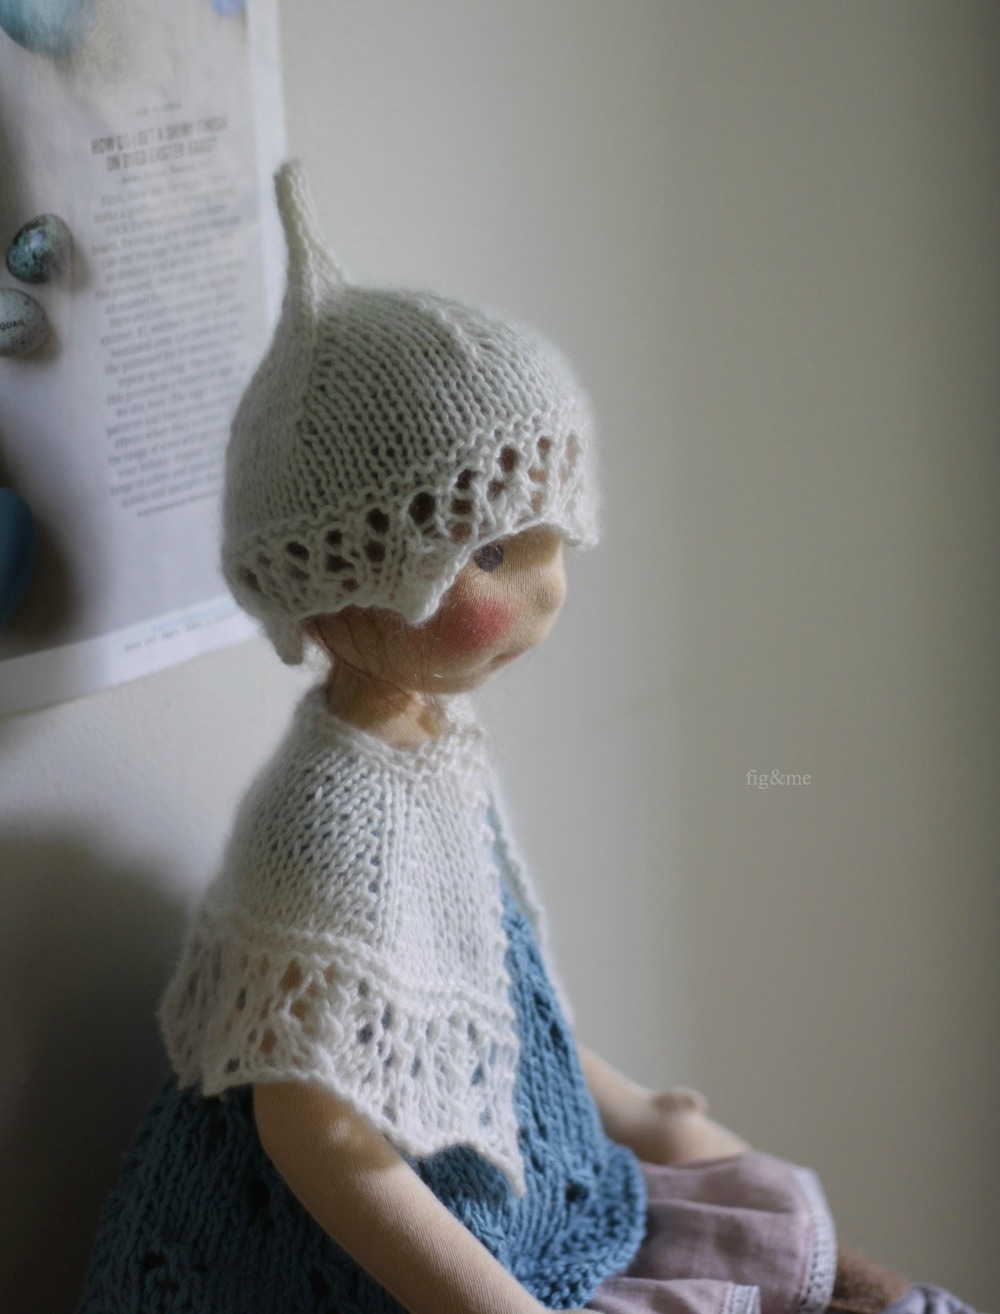 "Poet is a Petite Fig (22"" tall), a one of a kind wool sculpted doll of very minute proportions, a new style of handmade doll for 2015 (via Fig and me)"